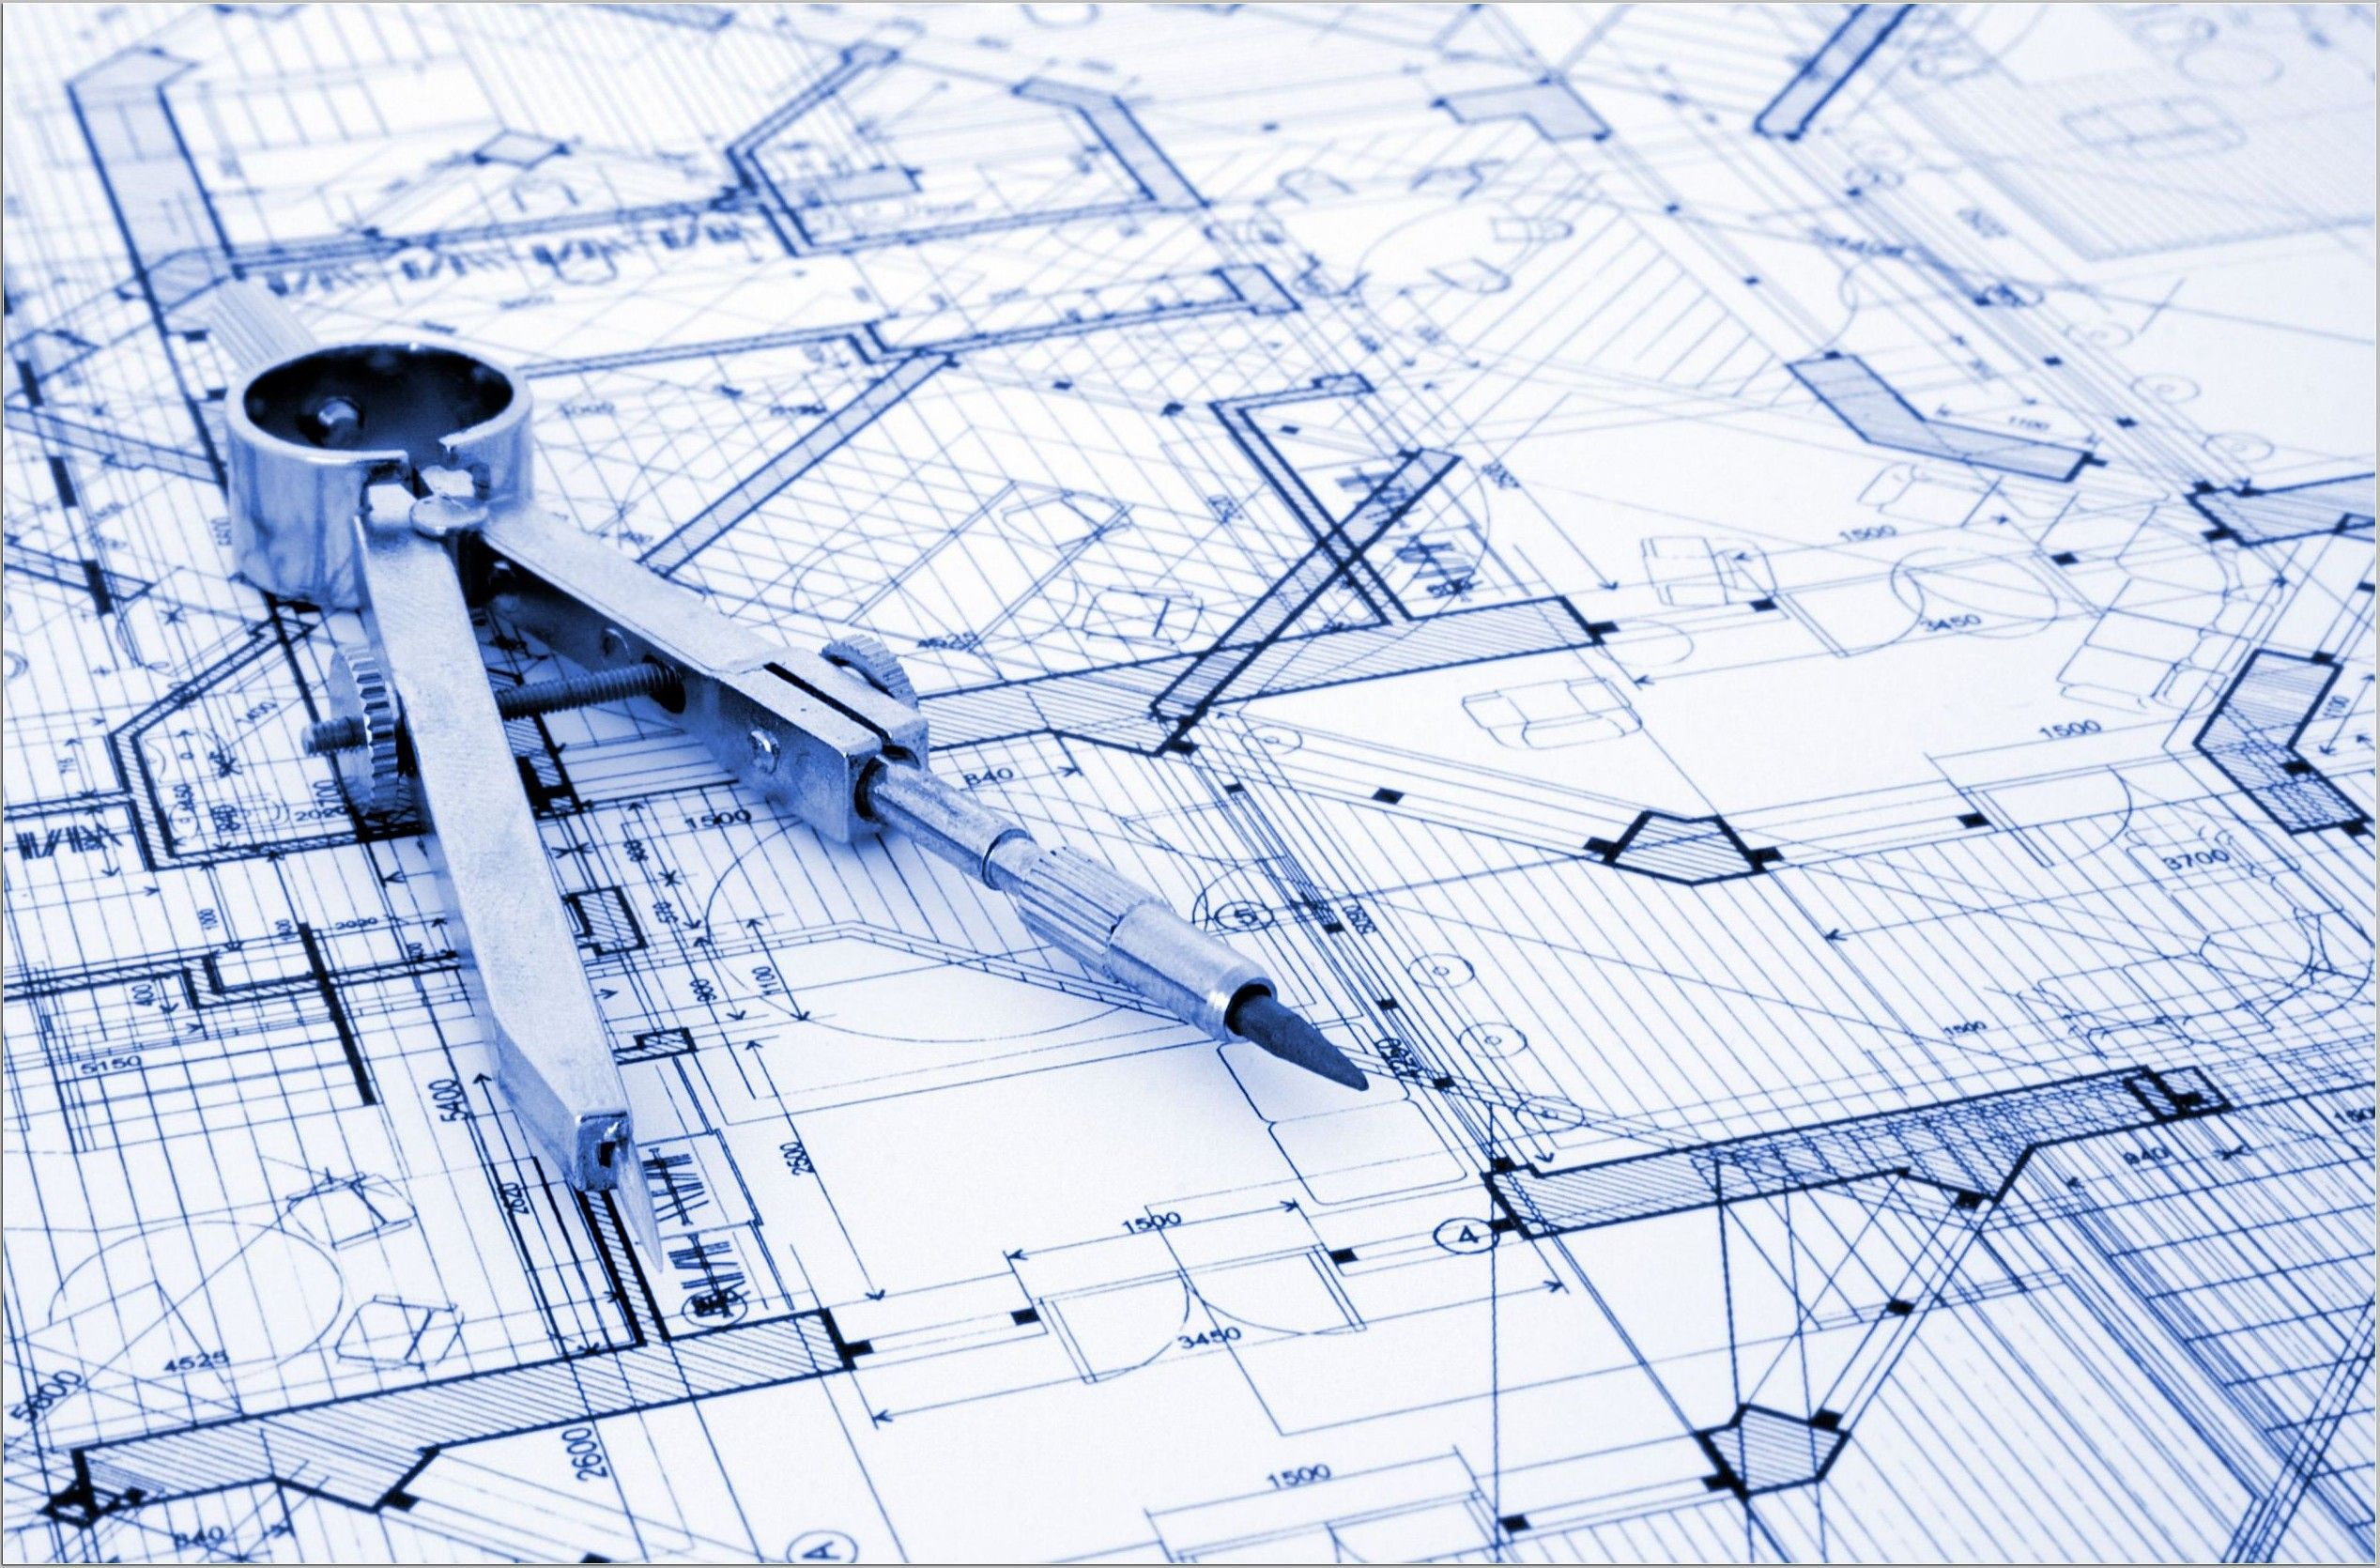 50 Civil Engineering Wallpapers Download At Wallpaperbro Architecture Blueprints Architecture Wallpaper Architecture 1080p civil engineering hd wallpapers